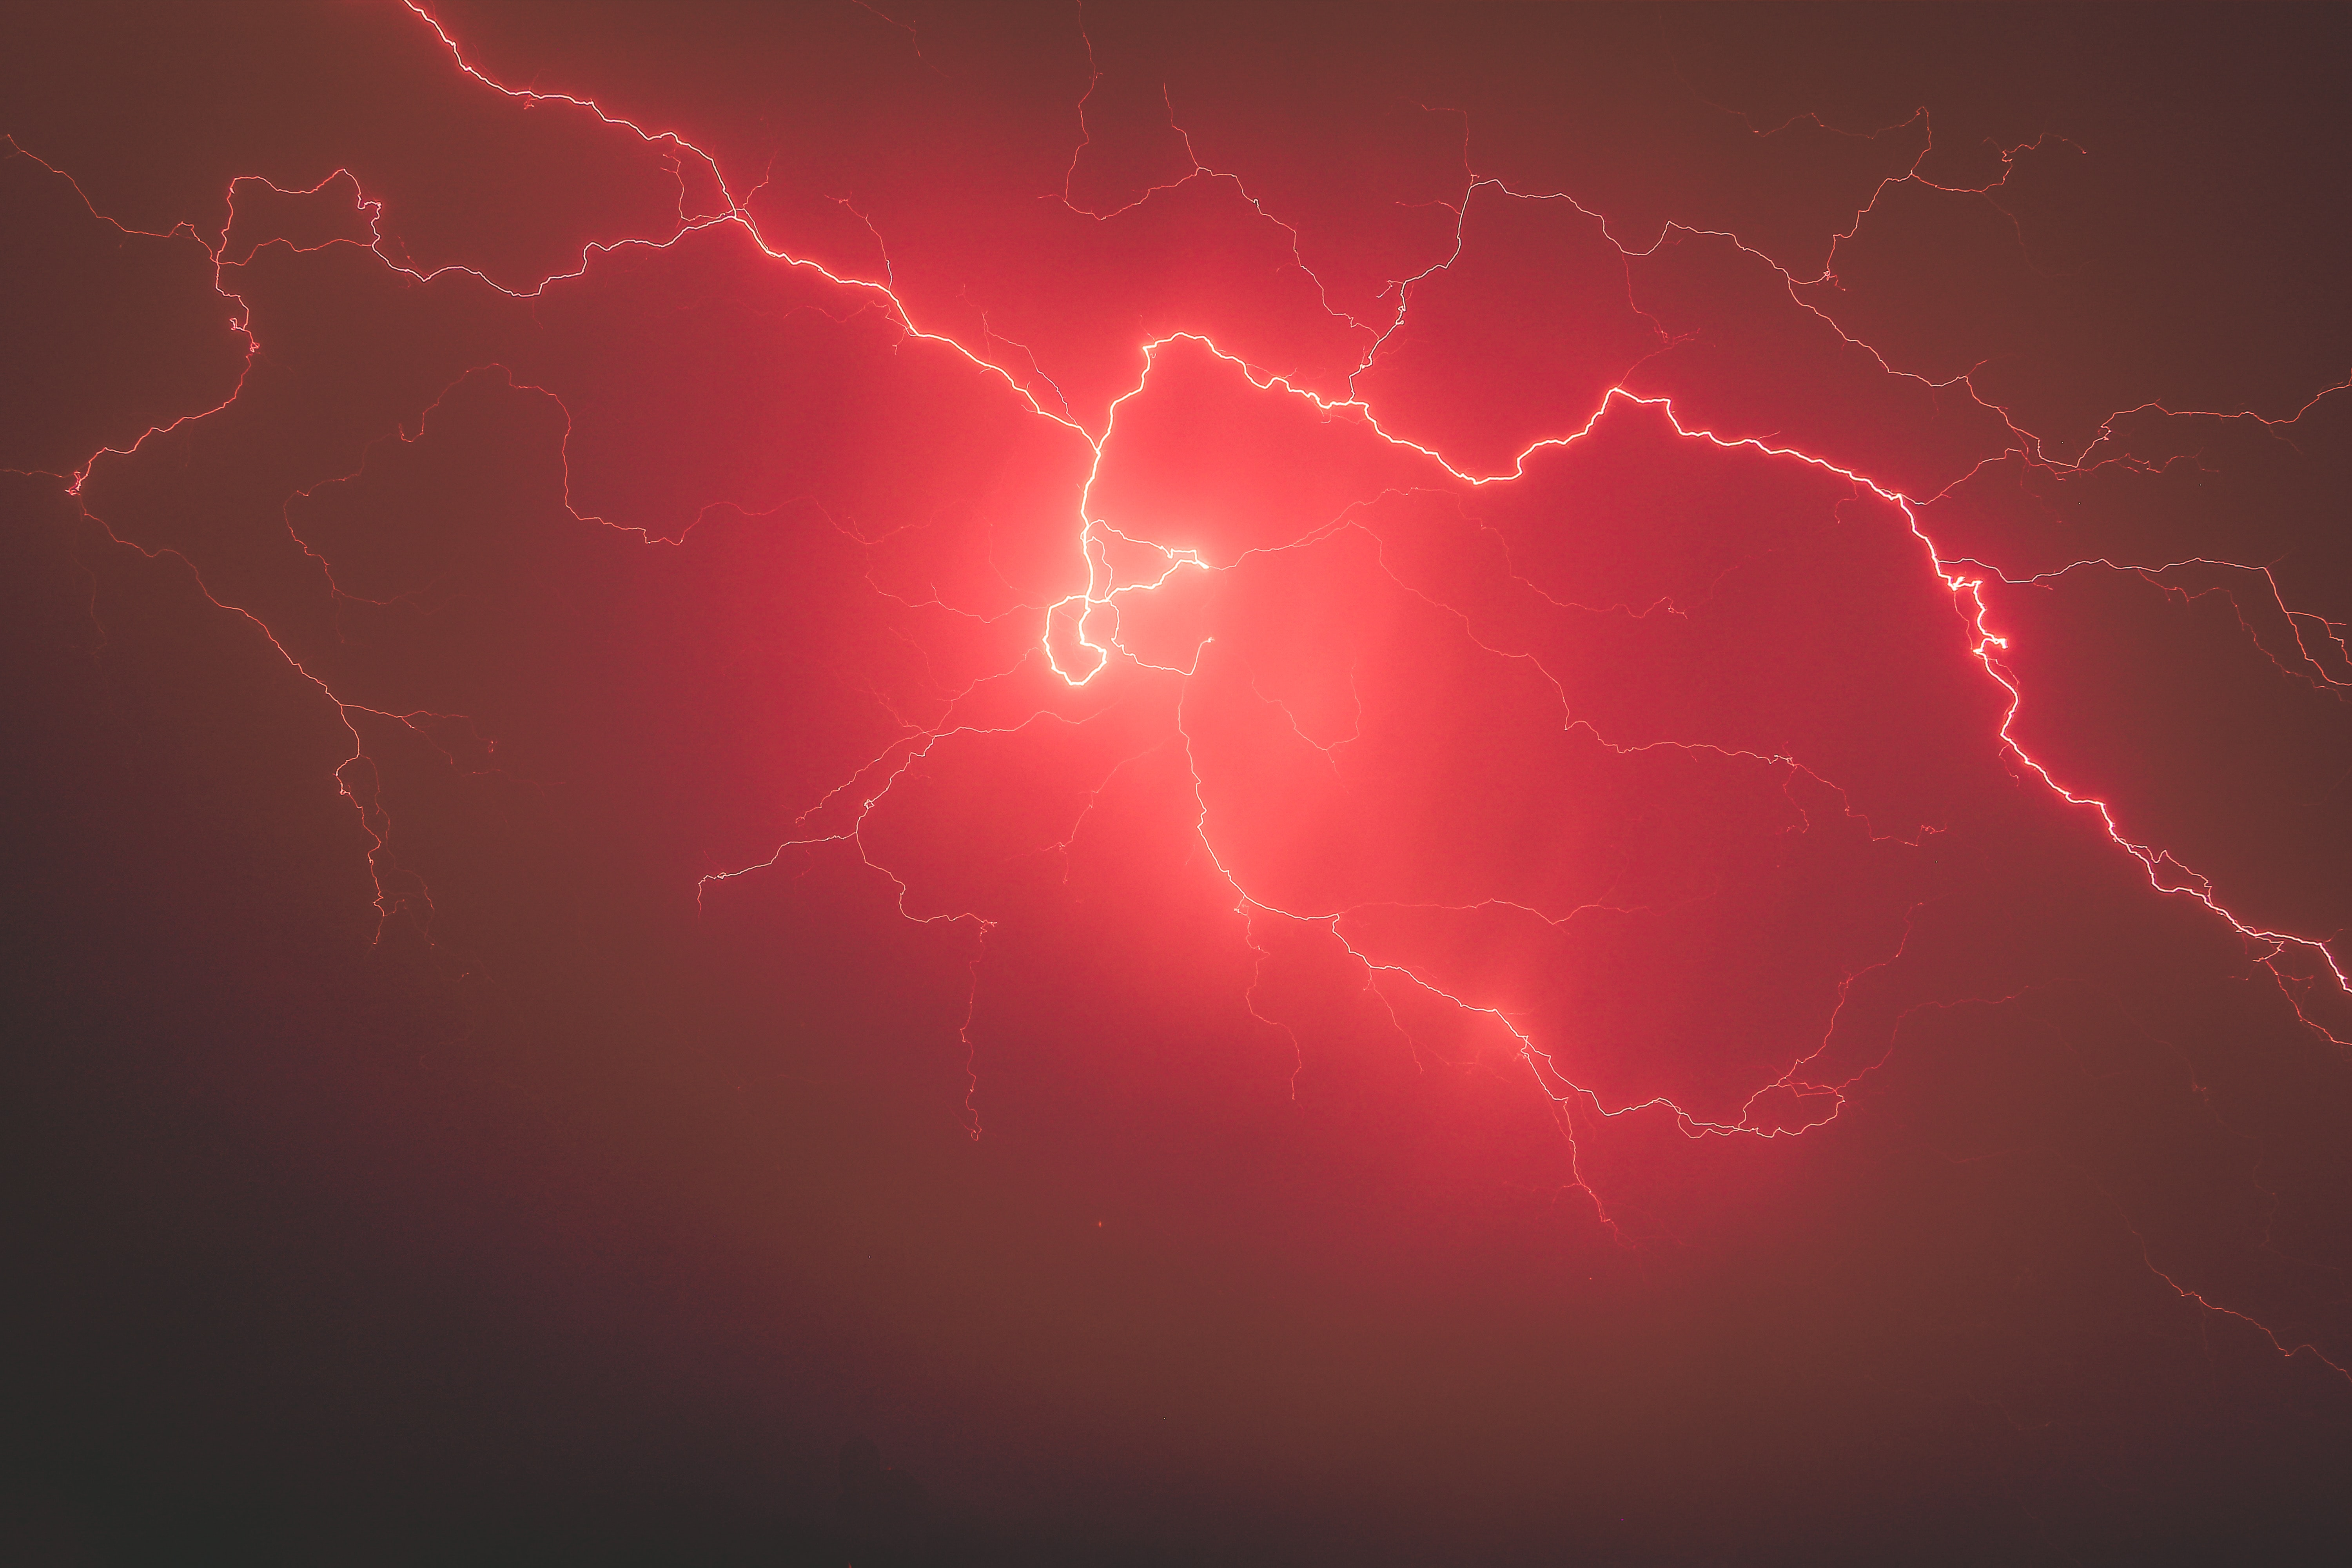 Bright red lightning bolts in the night sky during a storm near St. Paul's School